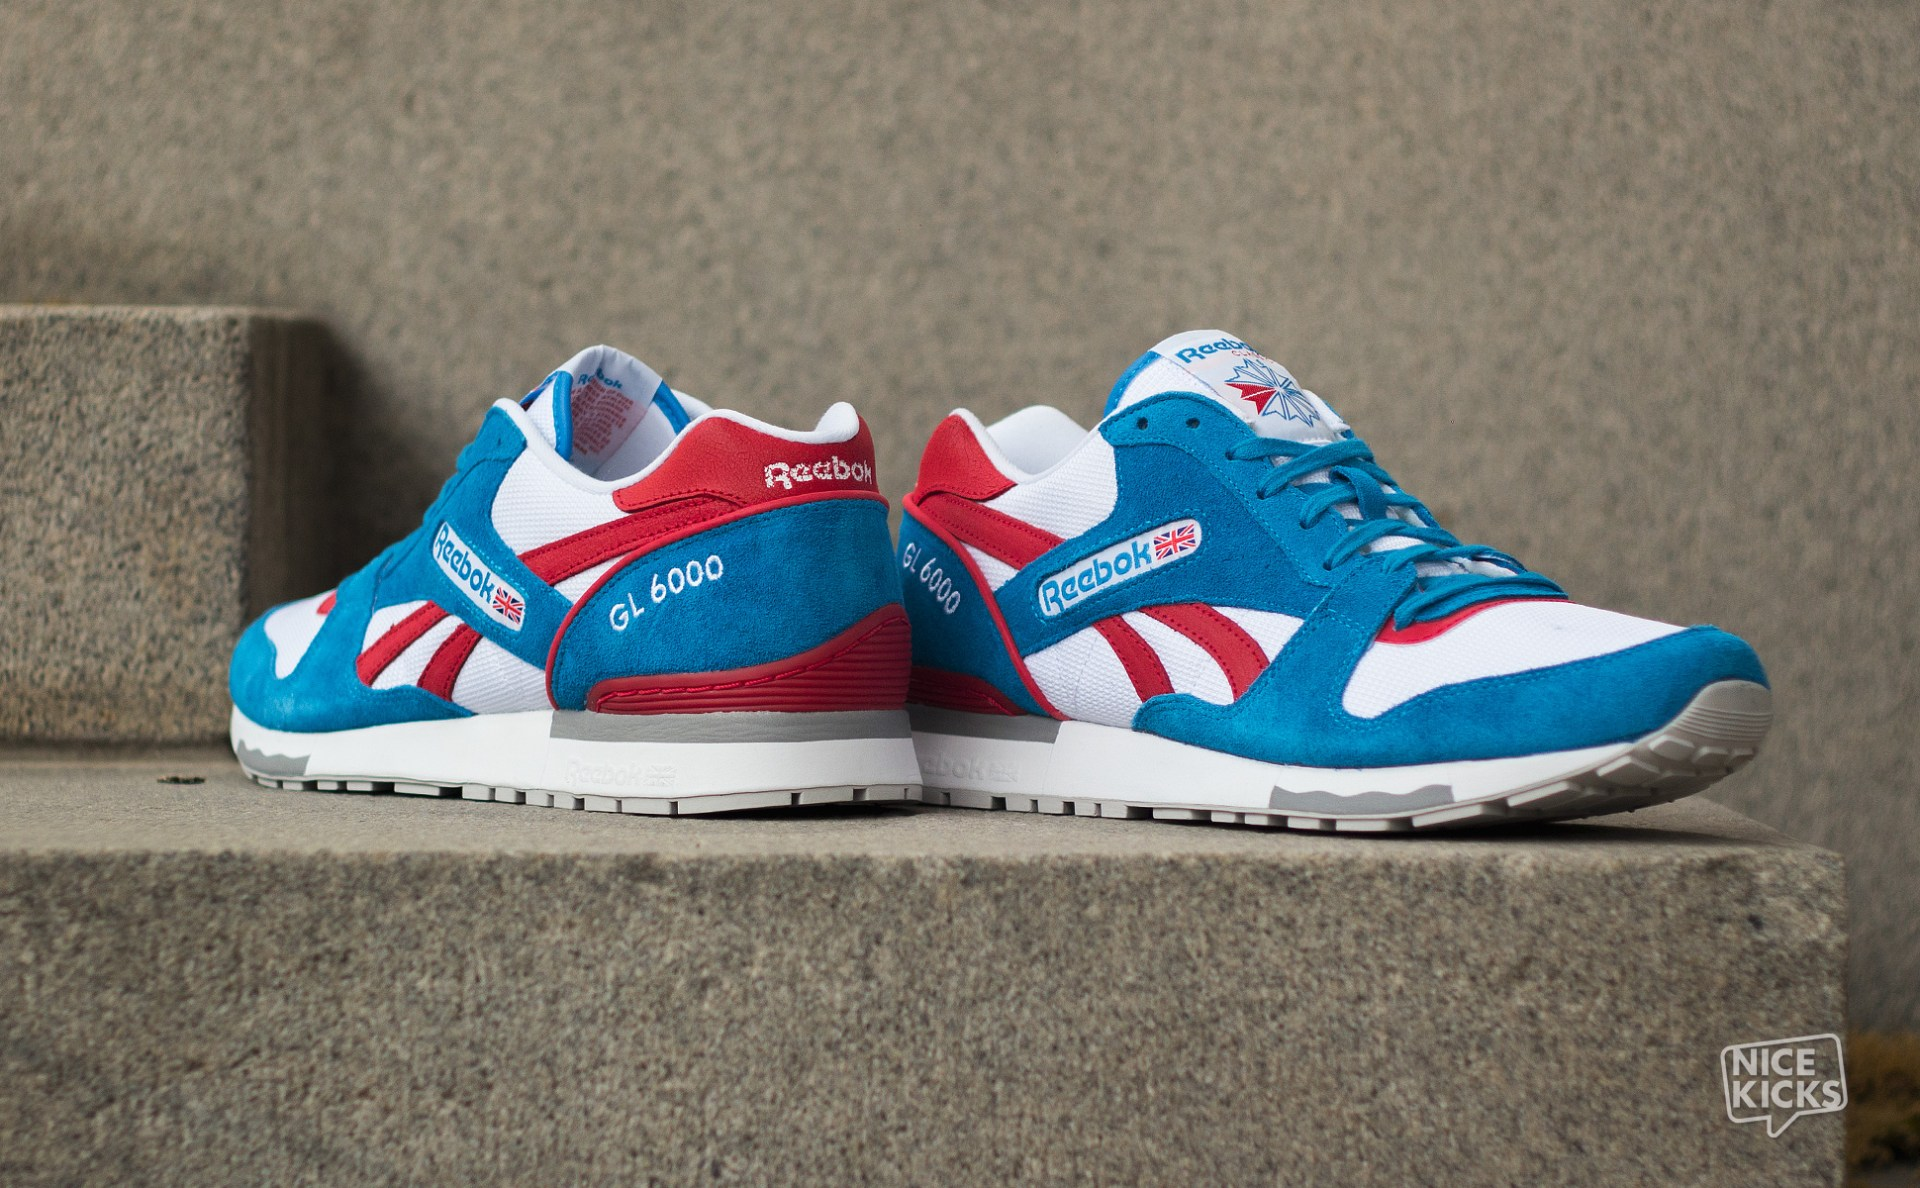 ab90d22f28e5fb Reebok GL6000 White Blue-Red Detailed Images